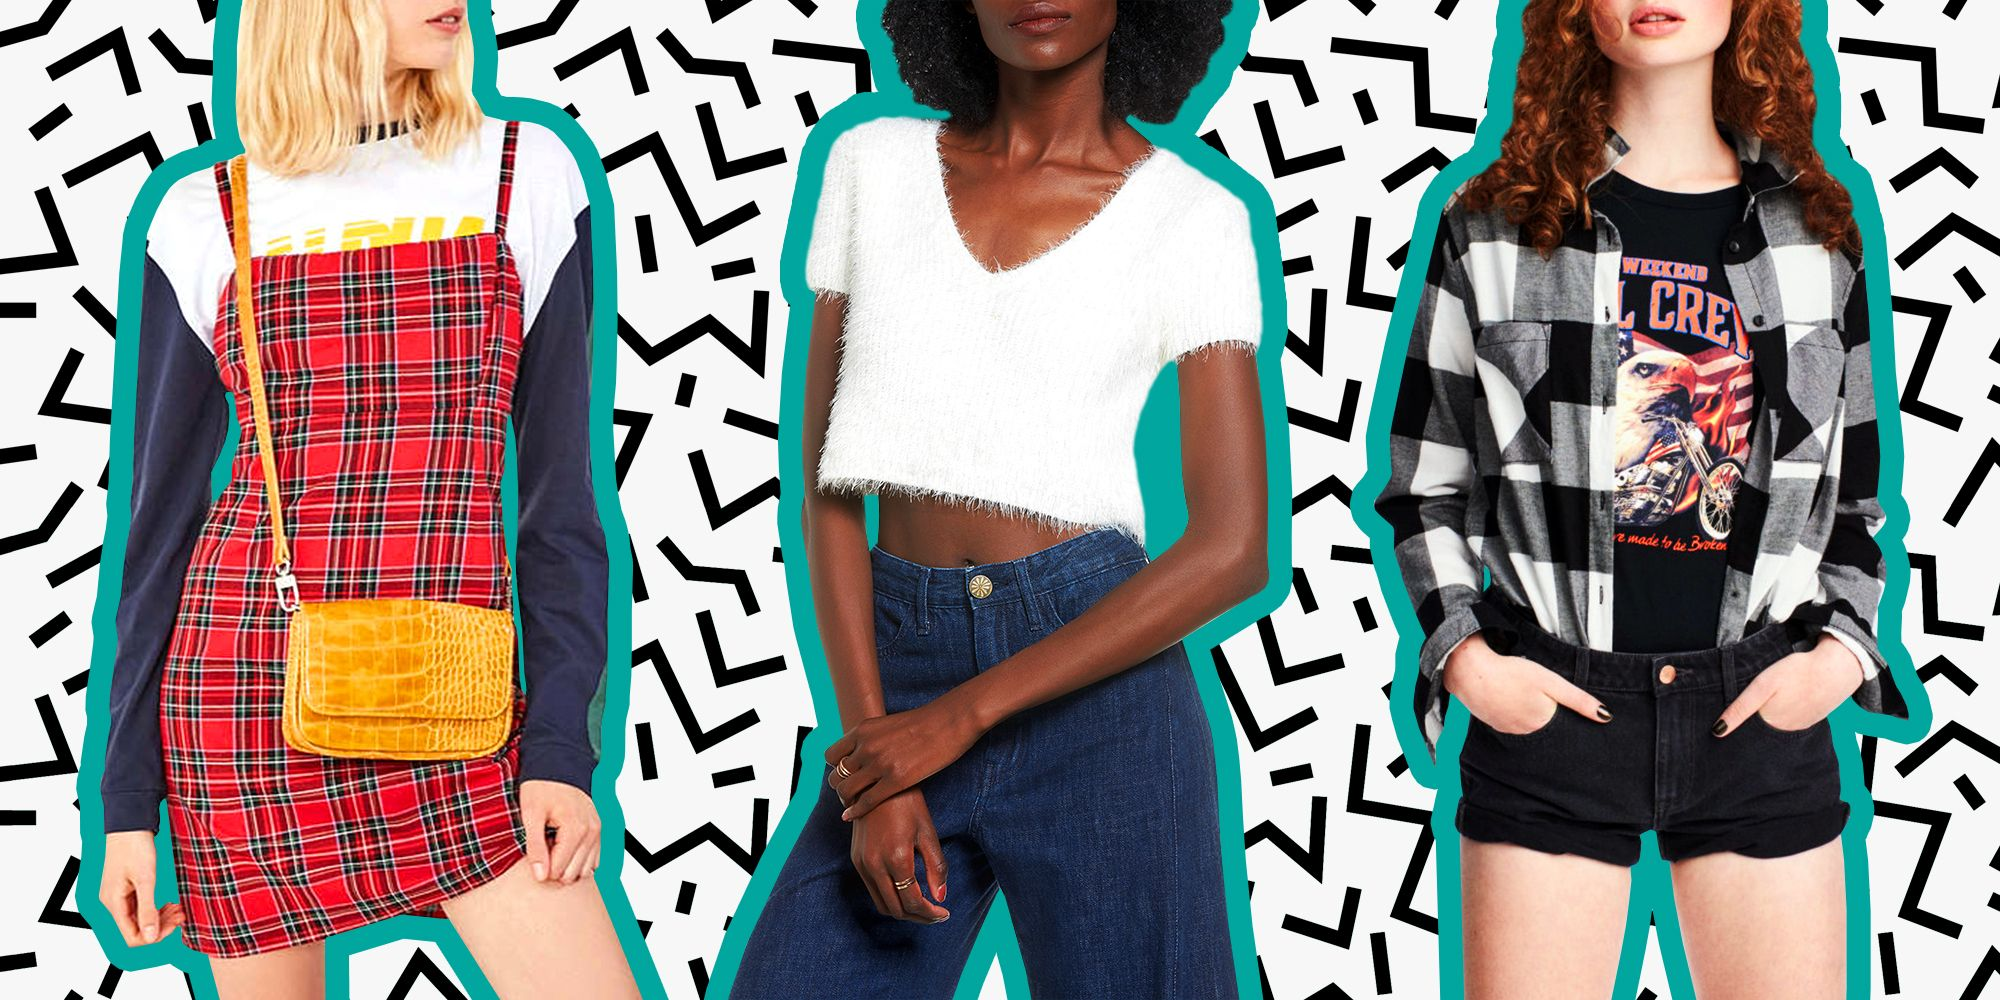 90 s Fashion Trends We Still Love in 2018   35 Best Fashion Trends     90 s Fashion Trends We Still Love in 2018   35 Best Fashion Trends from the  90 s